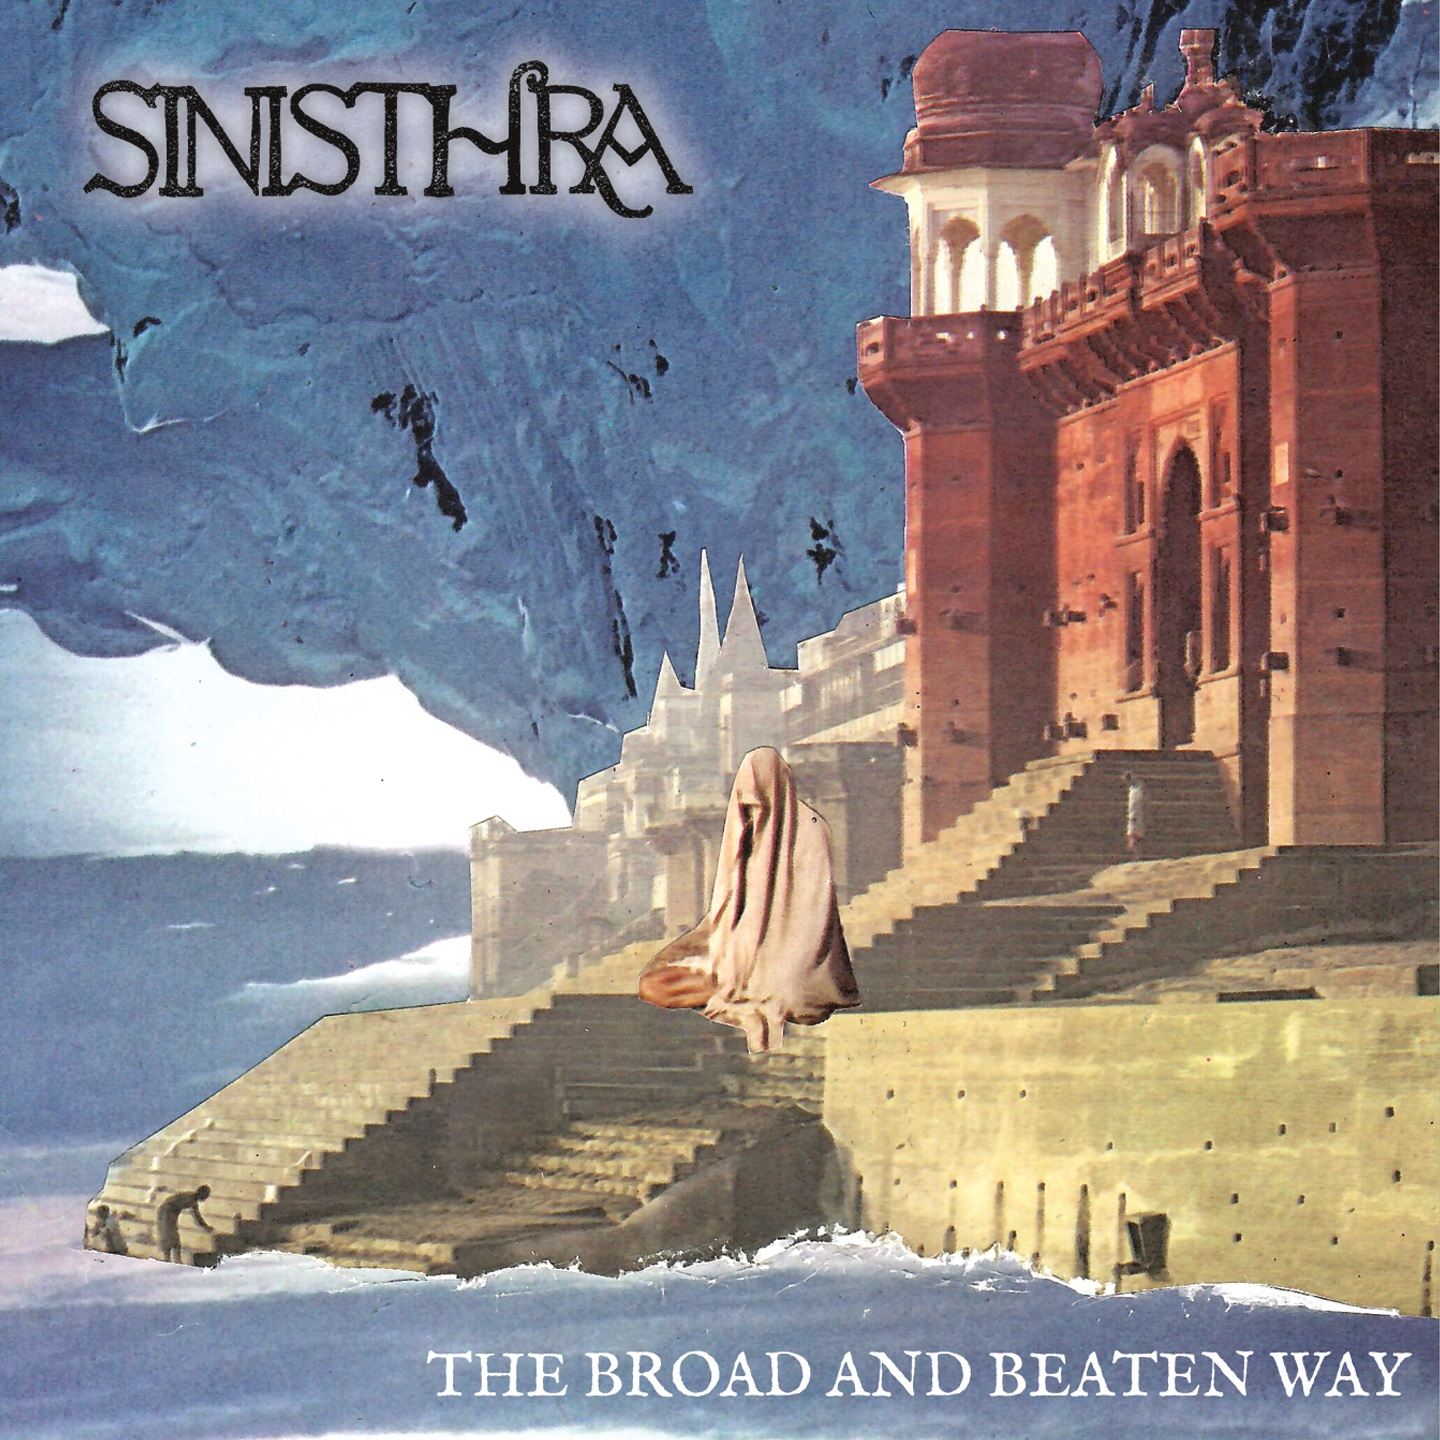 sinisthra-the-broad-and-beaten-way-eine-reise-der-melancholie-album-review